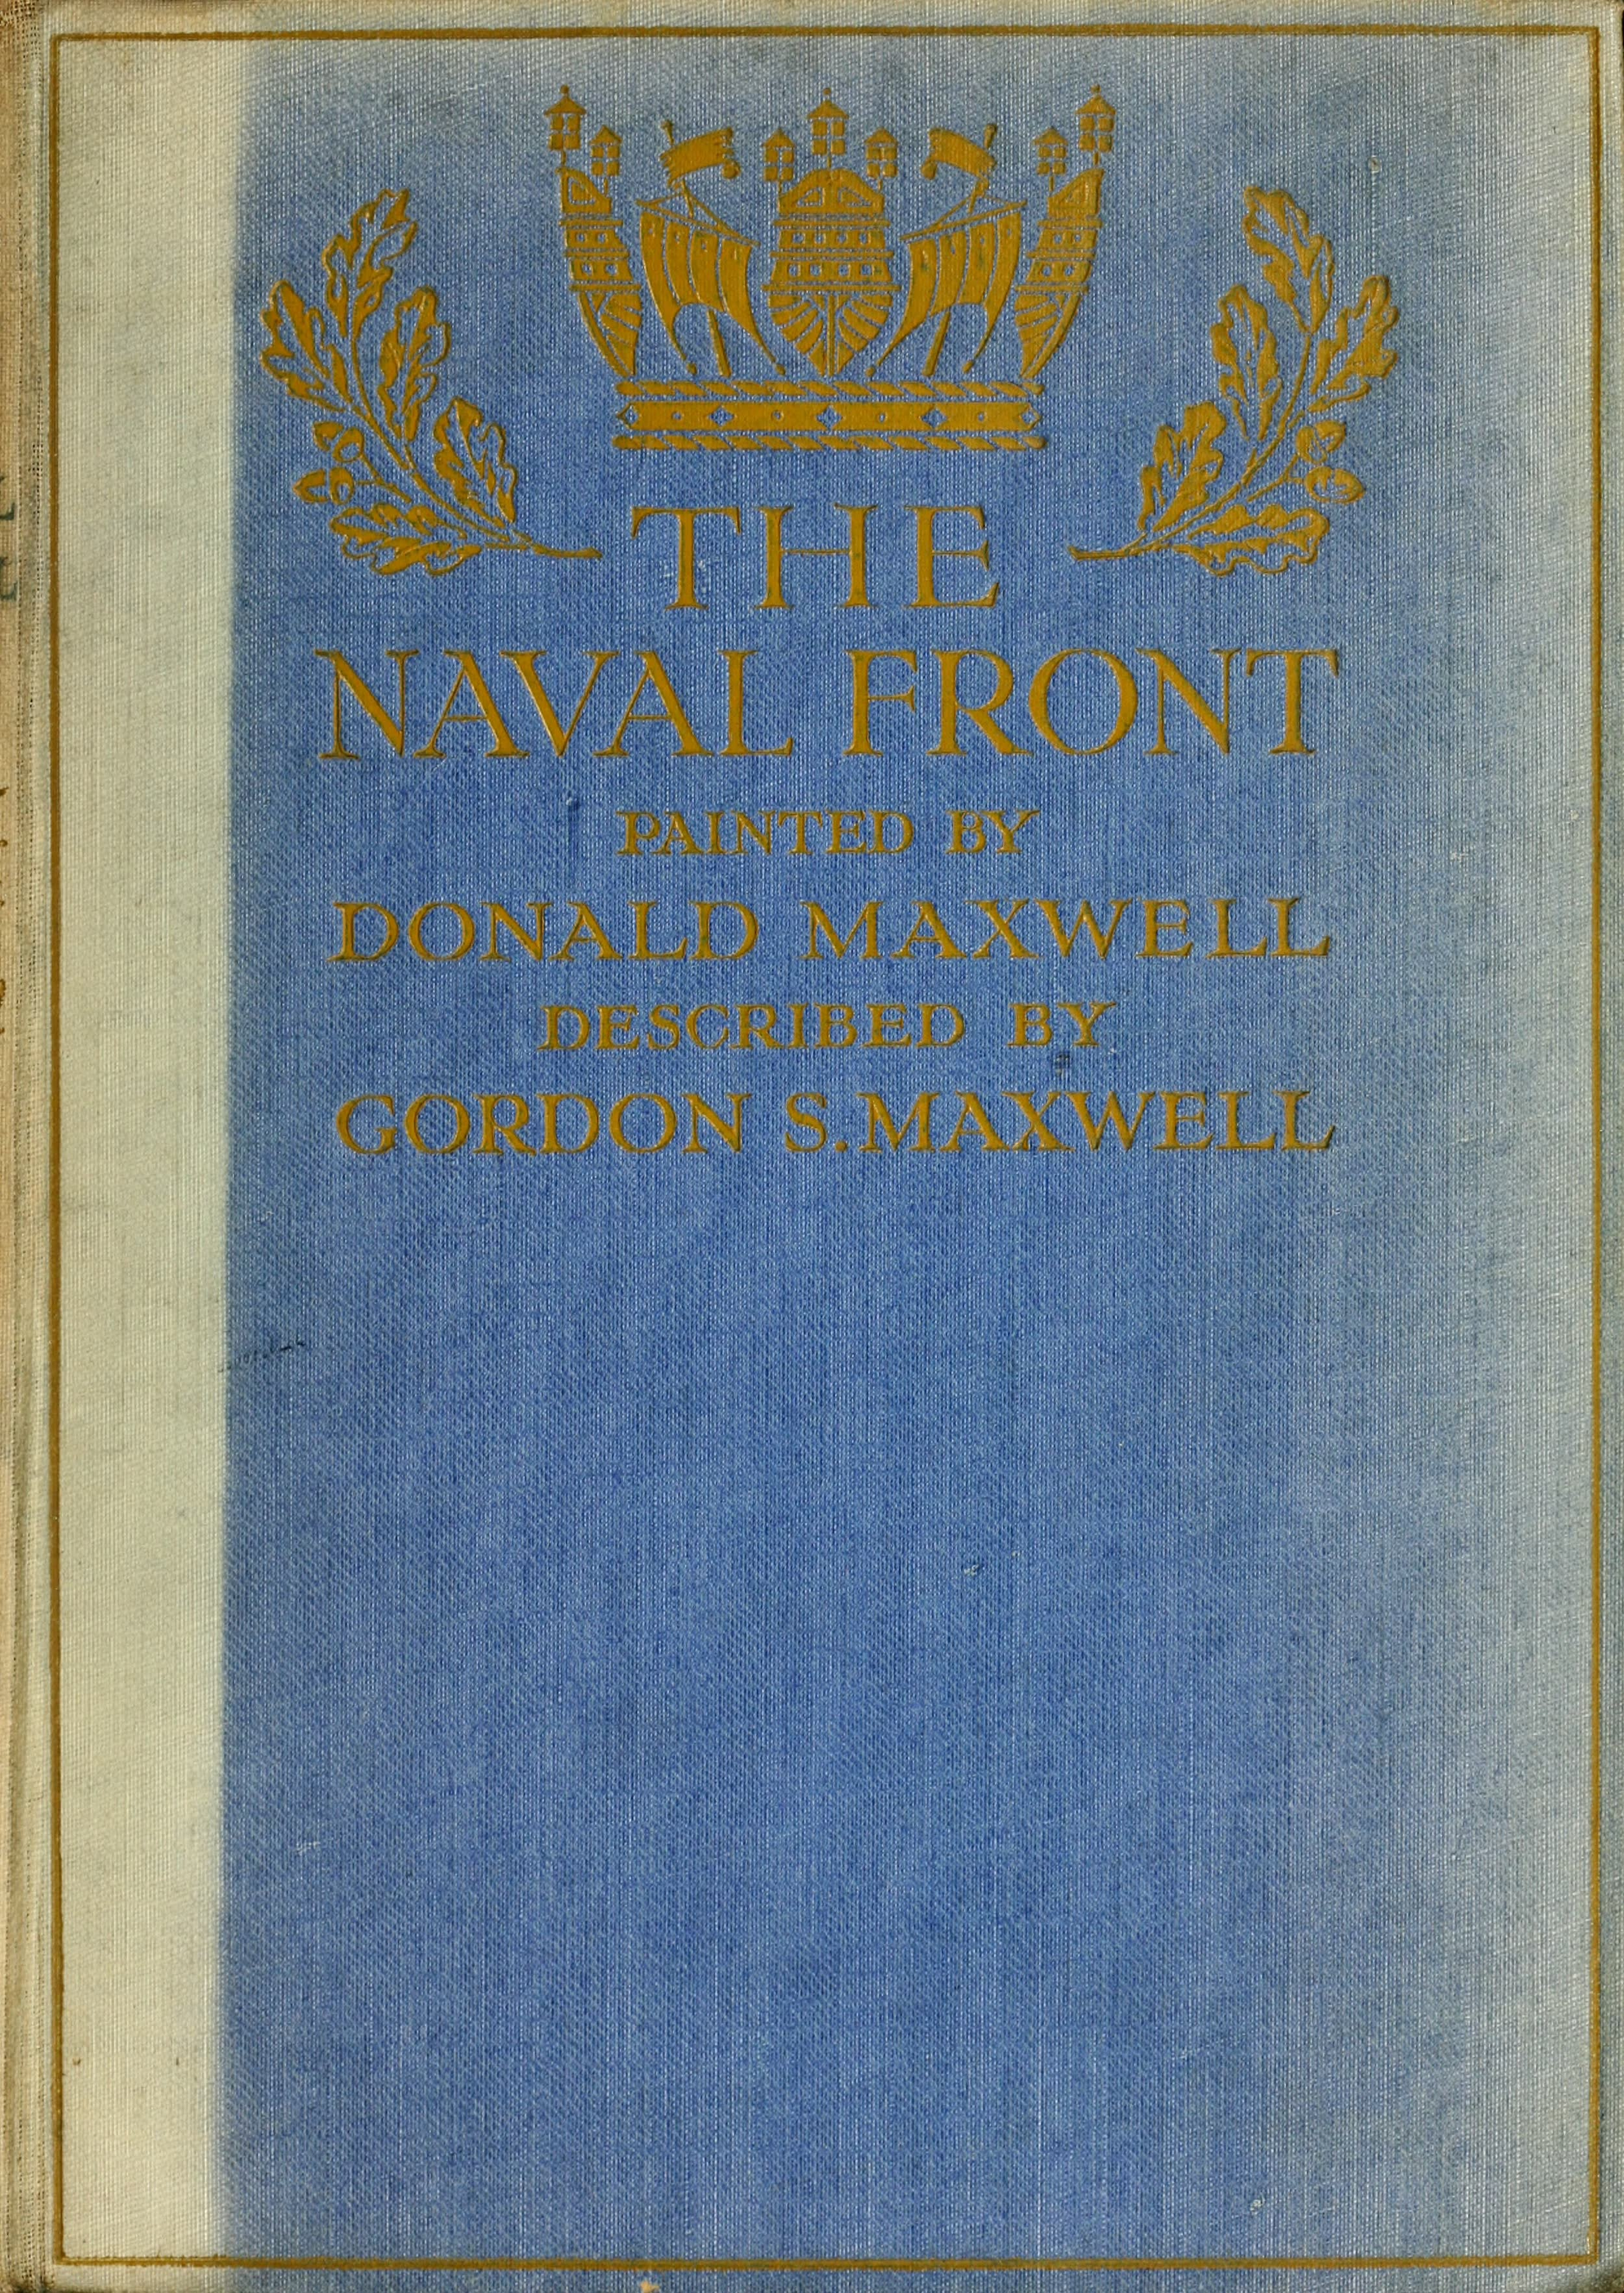 The Naval Front - Front Cover (1920)